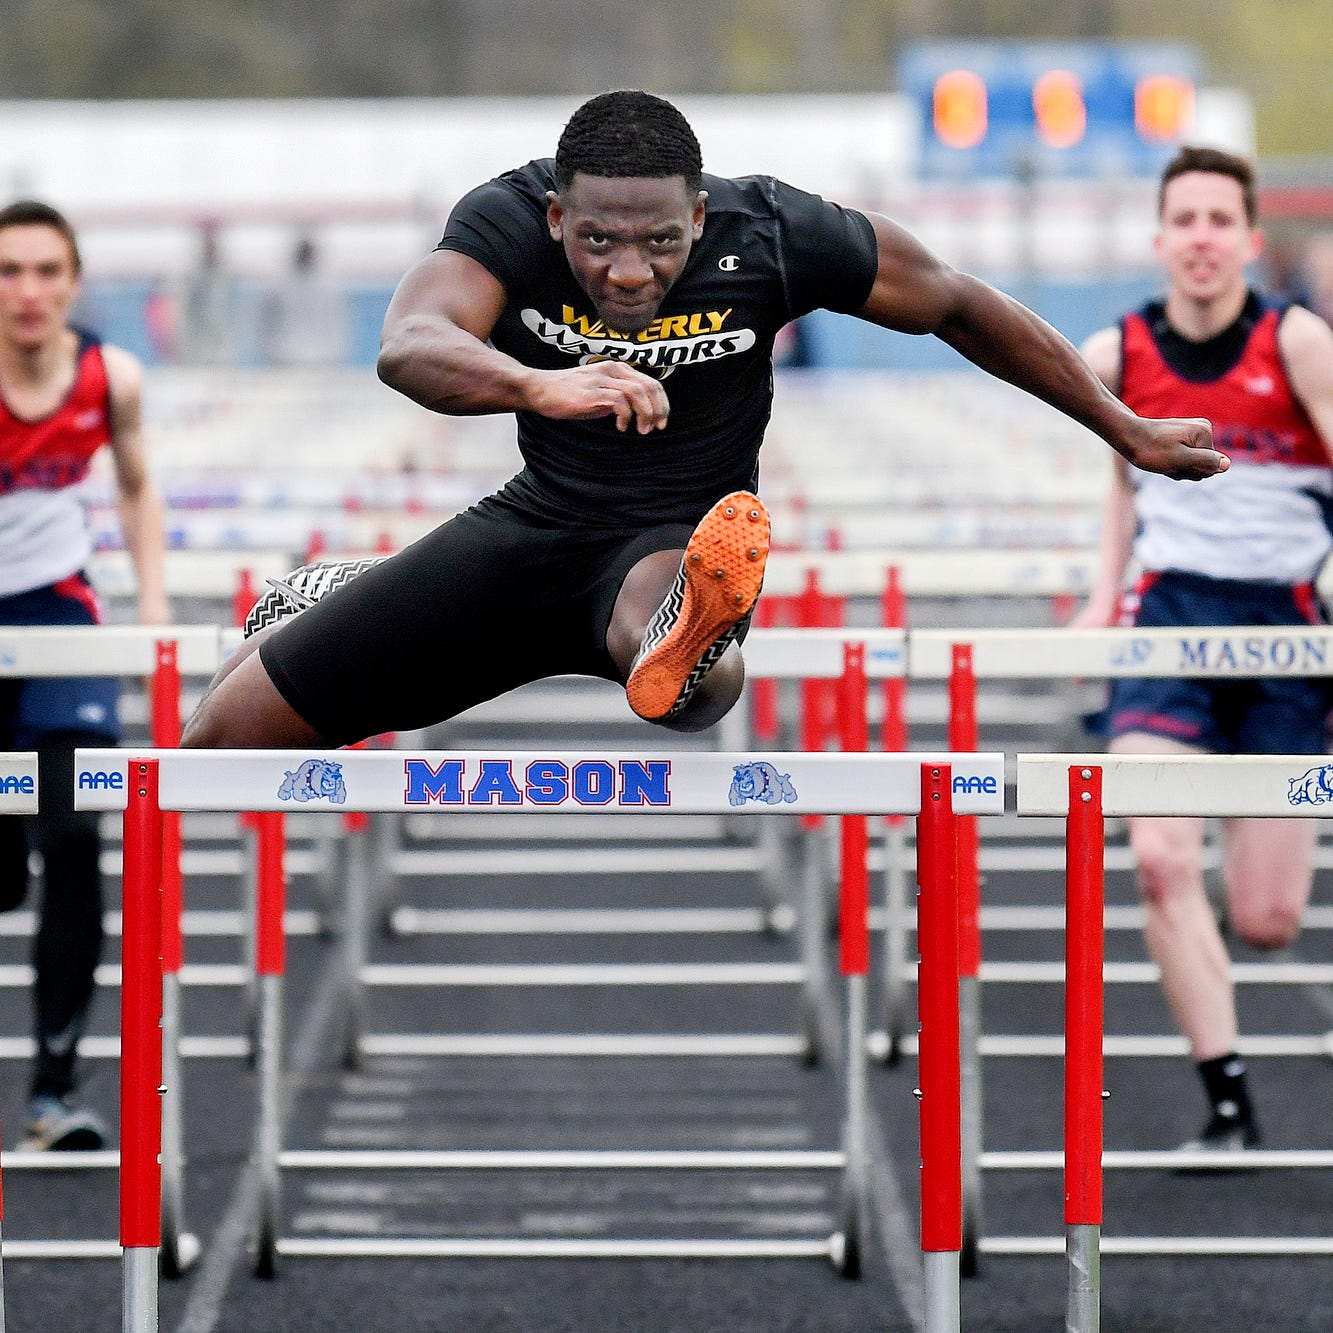 Meet one of the state's best high school hurdlers - Waverly's Keshaun Harris